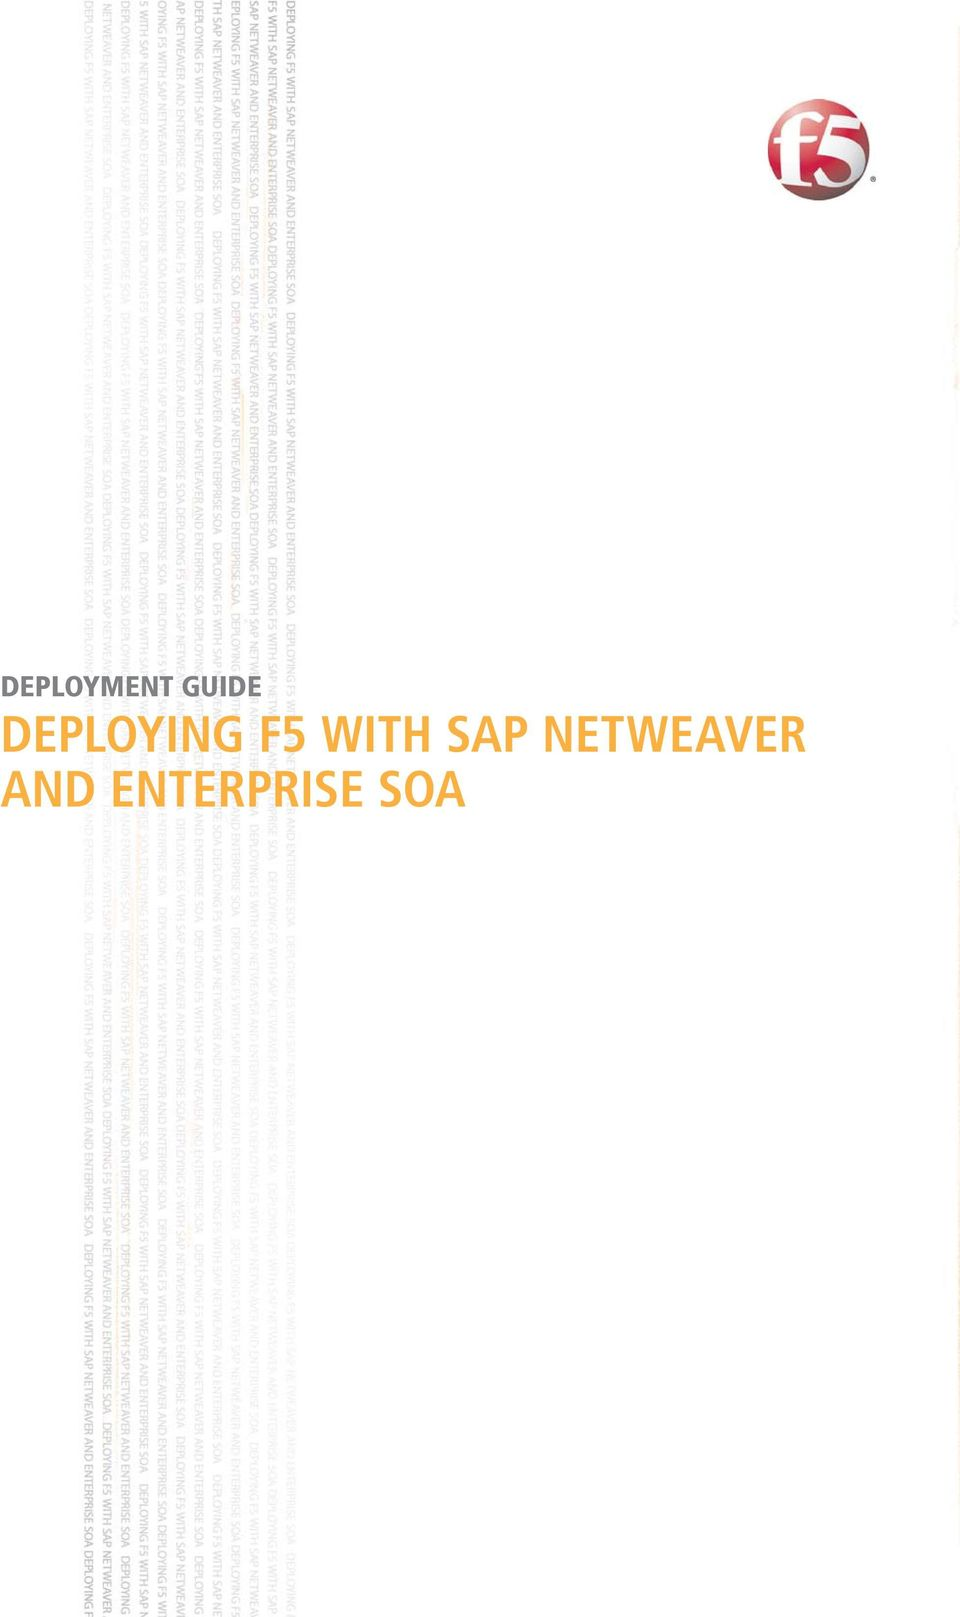 DEPLOYMENT GUIDE DEPLOYING F5 WITH SAP NETWEAVER AND ENTERPRISE SOA